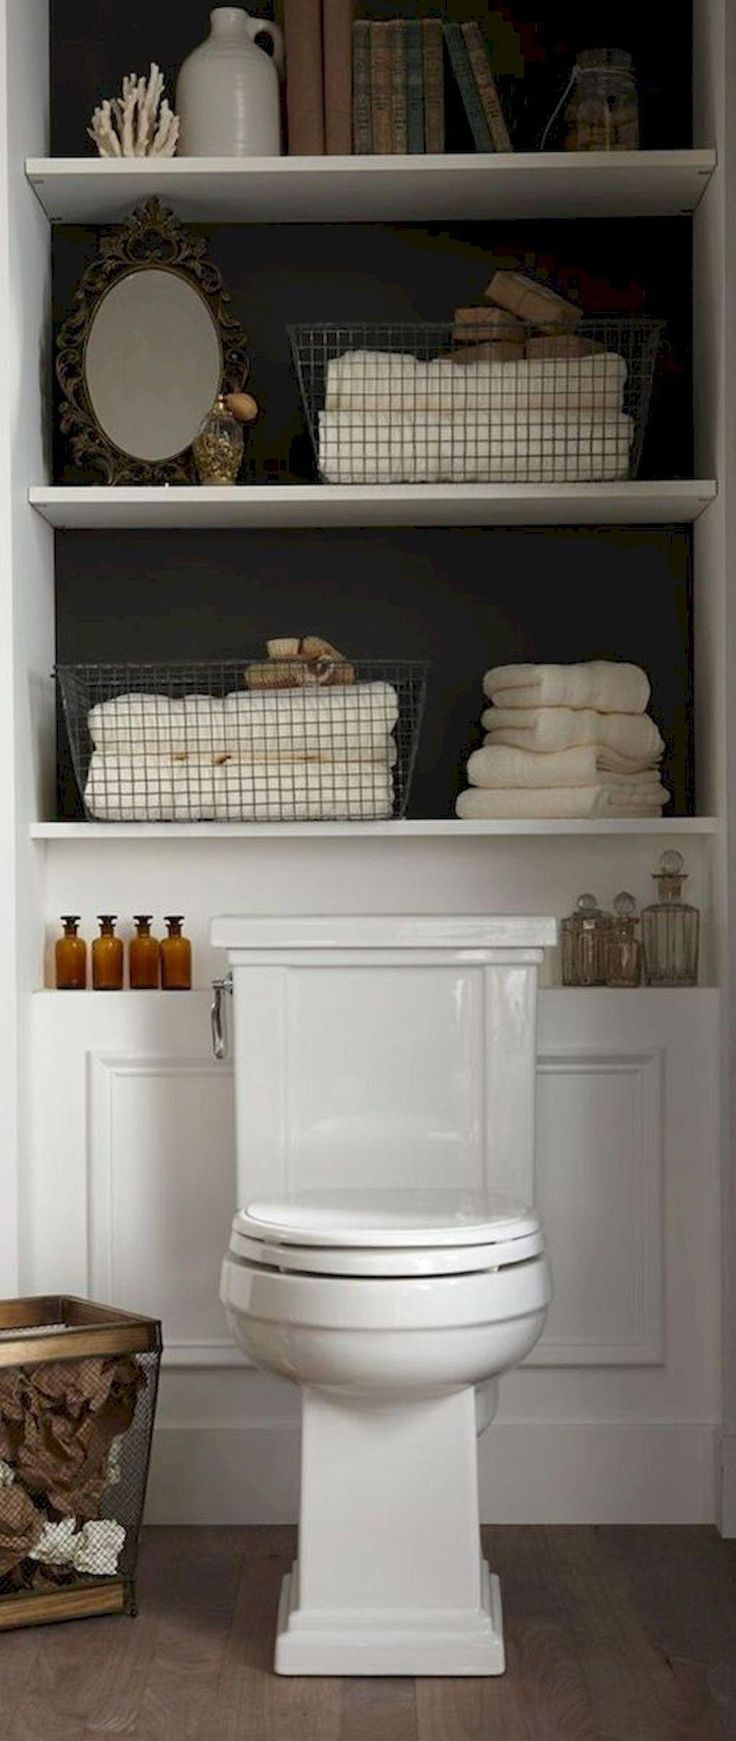 Awesome Master Bathroom Remodel Ideas On A Budget 10 #Bathroomideas   – Bathroom ideas